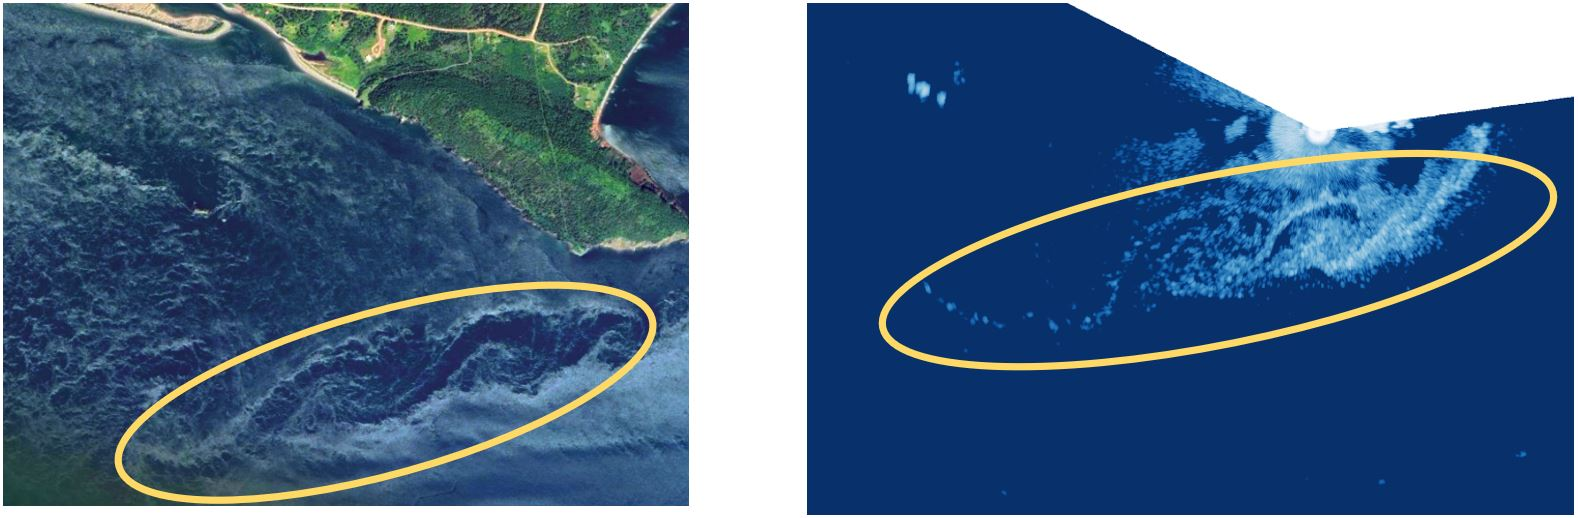 New radar imaging (right panel) reveals spiraling eddies (within yellow ellipse) previously detected via satellite imagery (left panel) in real time, generated during an ebb tide by Cape Sharp in the Minas Passage, Bay of Fundy. Radar-based imaging allows researchers to quantify hydrodynamics so that fish distributions in relation to eddies, wakes and turbulence features can be better understood.  See time-lapse video of radar data in the Minas Passage: https://fundyforcelive.ca/#!/radar